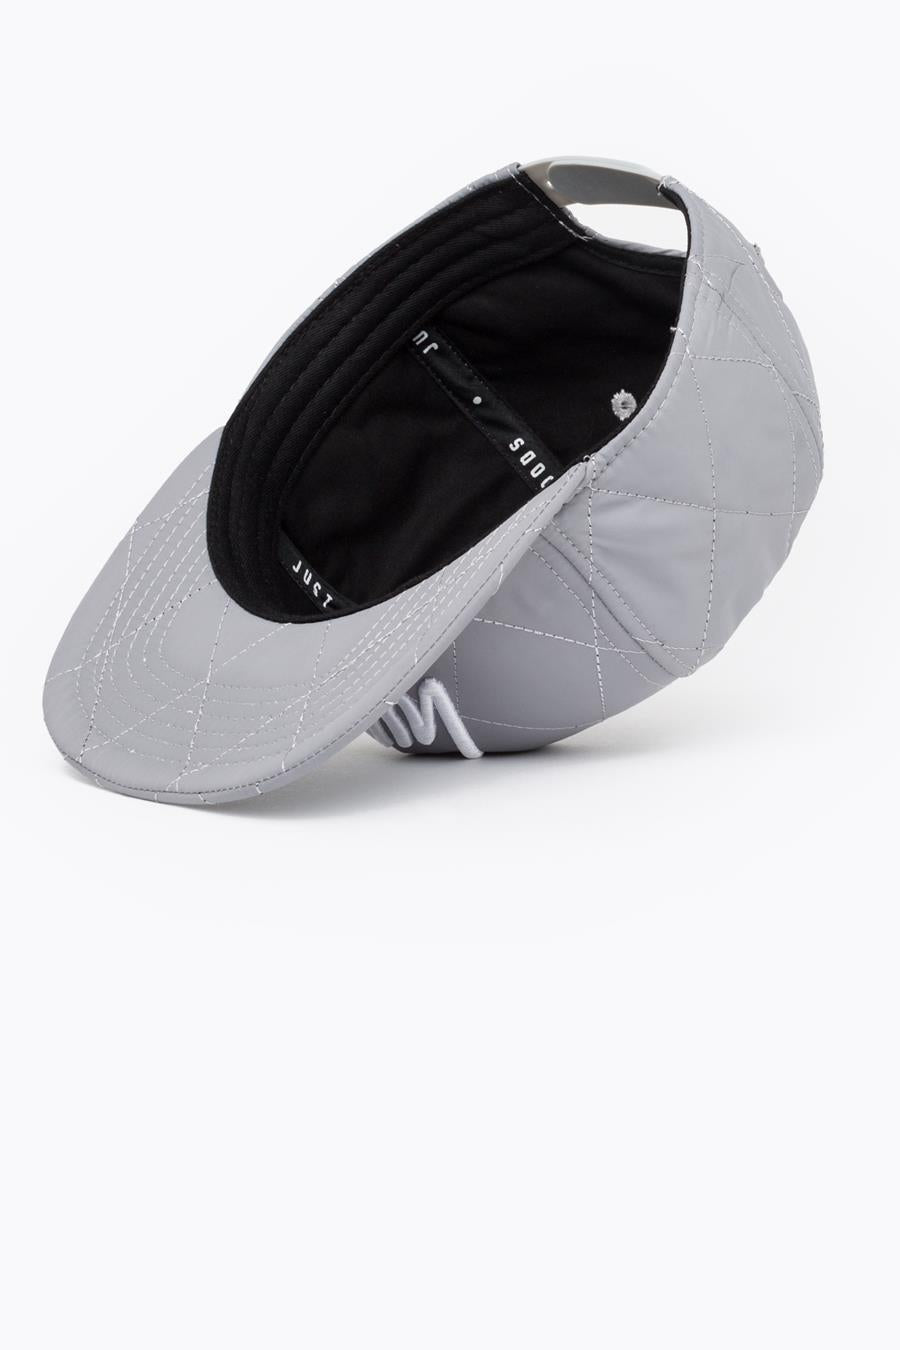 HYPE REFLECTIVE QUILTED REFLECTIVE SNAPBACK HAT – JustHype ltd 2c8502ca32